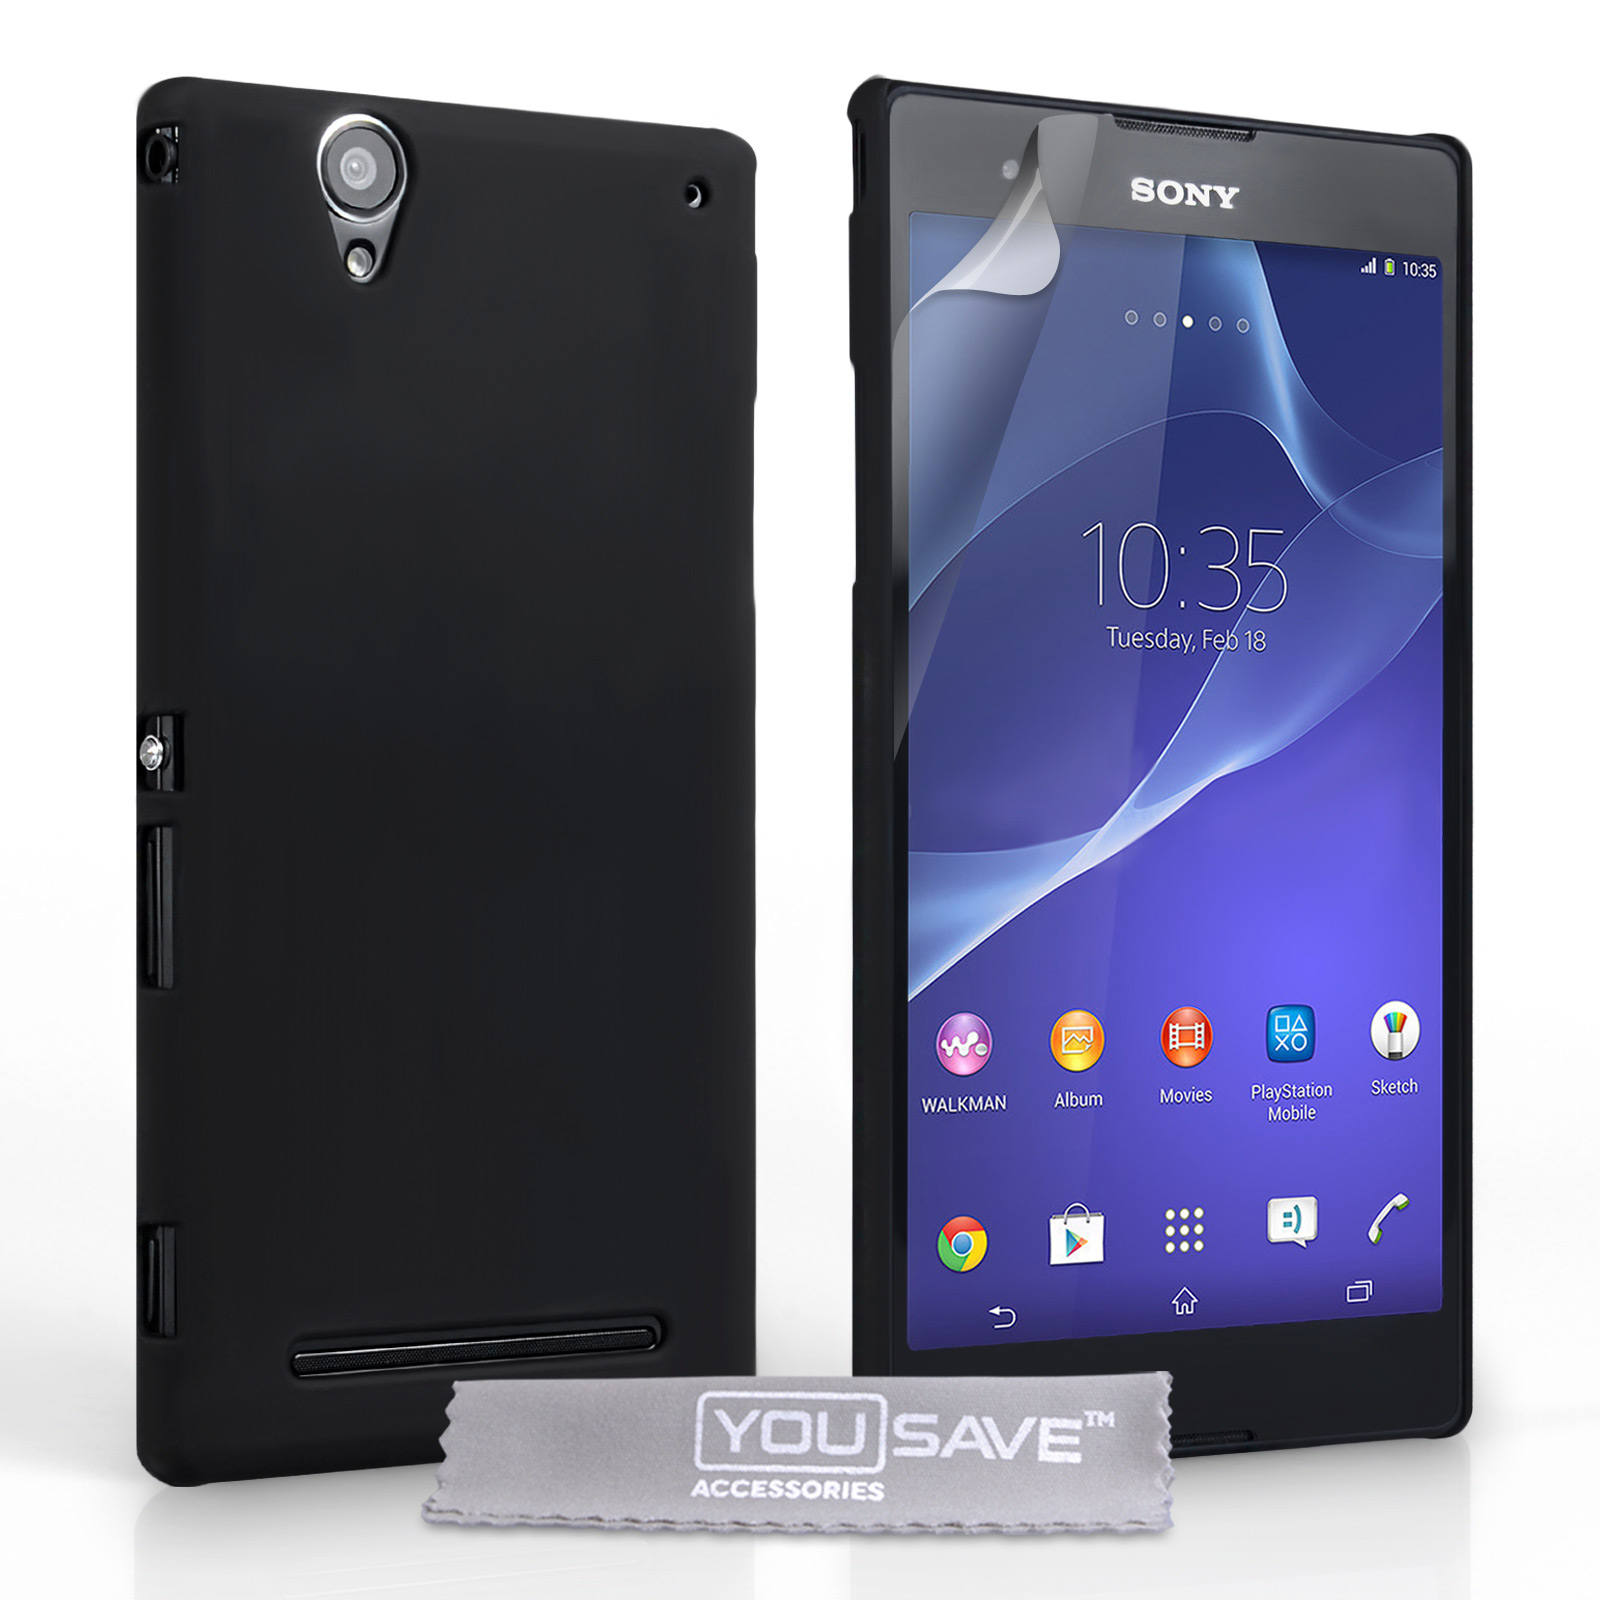 YouSave Accessories Sony Xperia T2 Ultra Hard Hybrid Case - Black